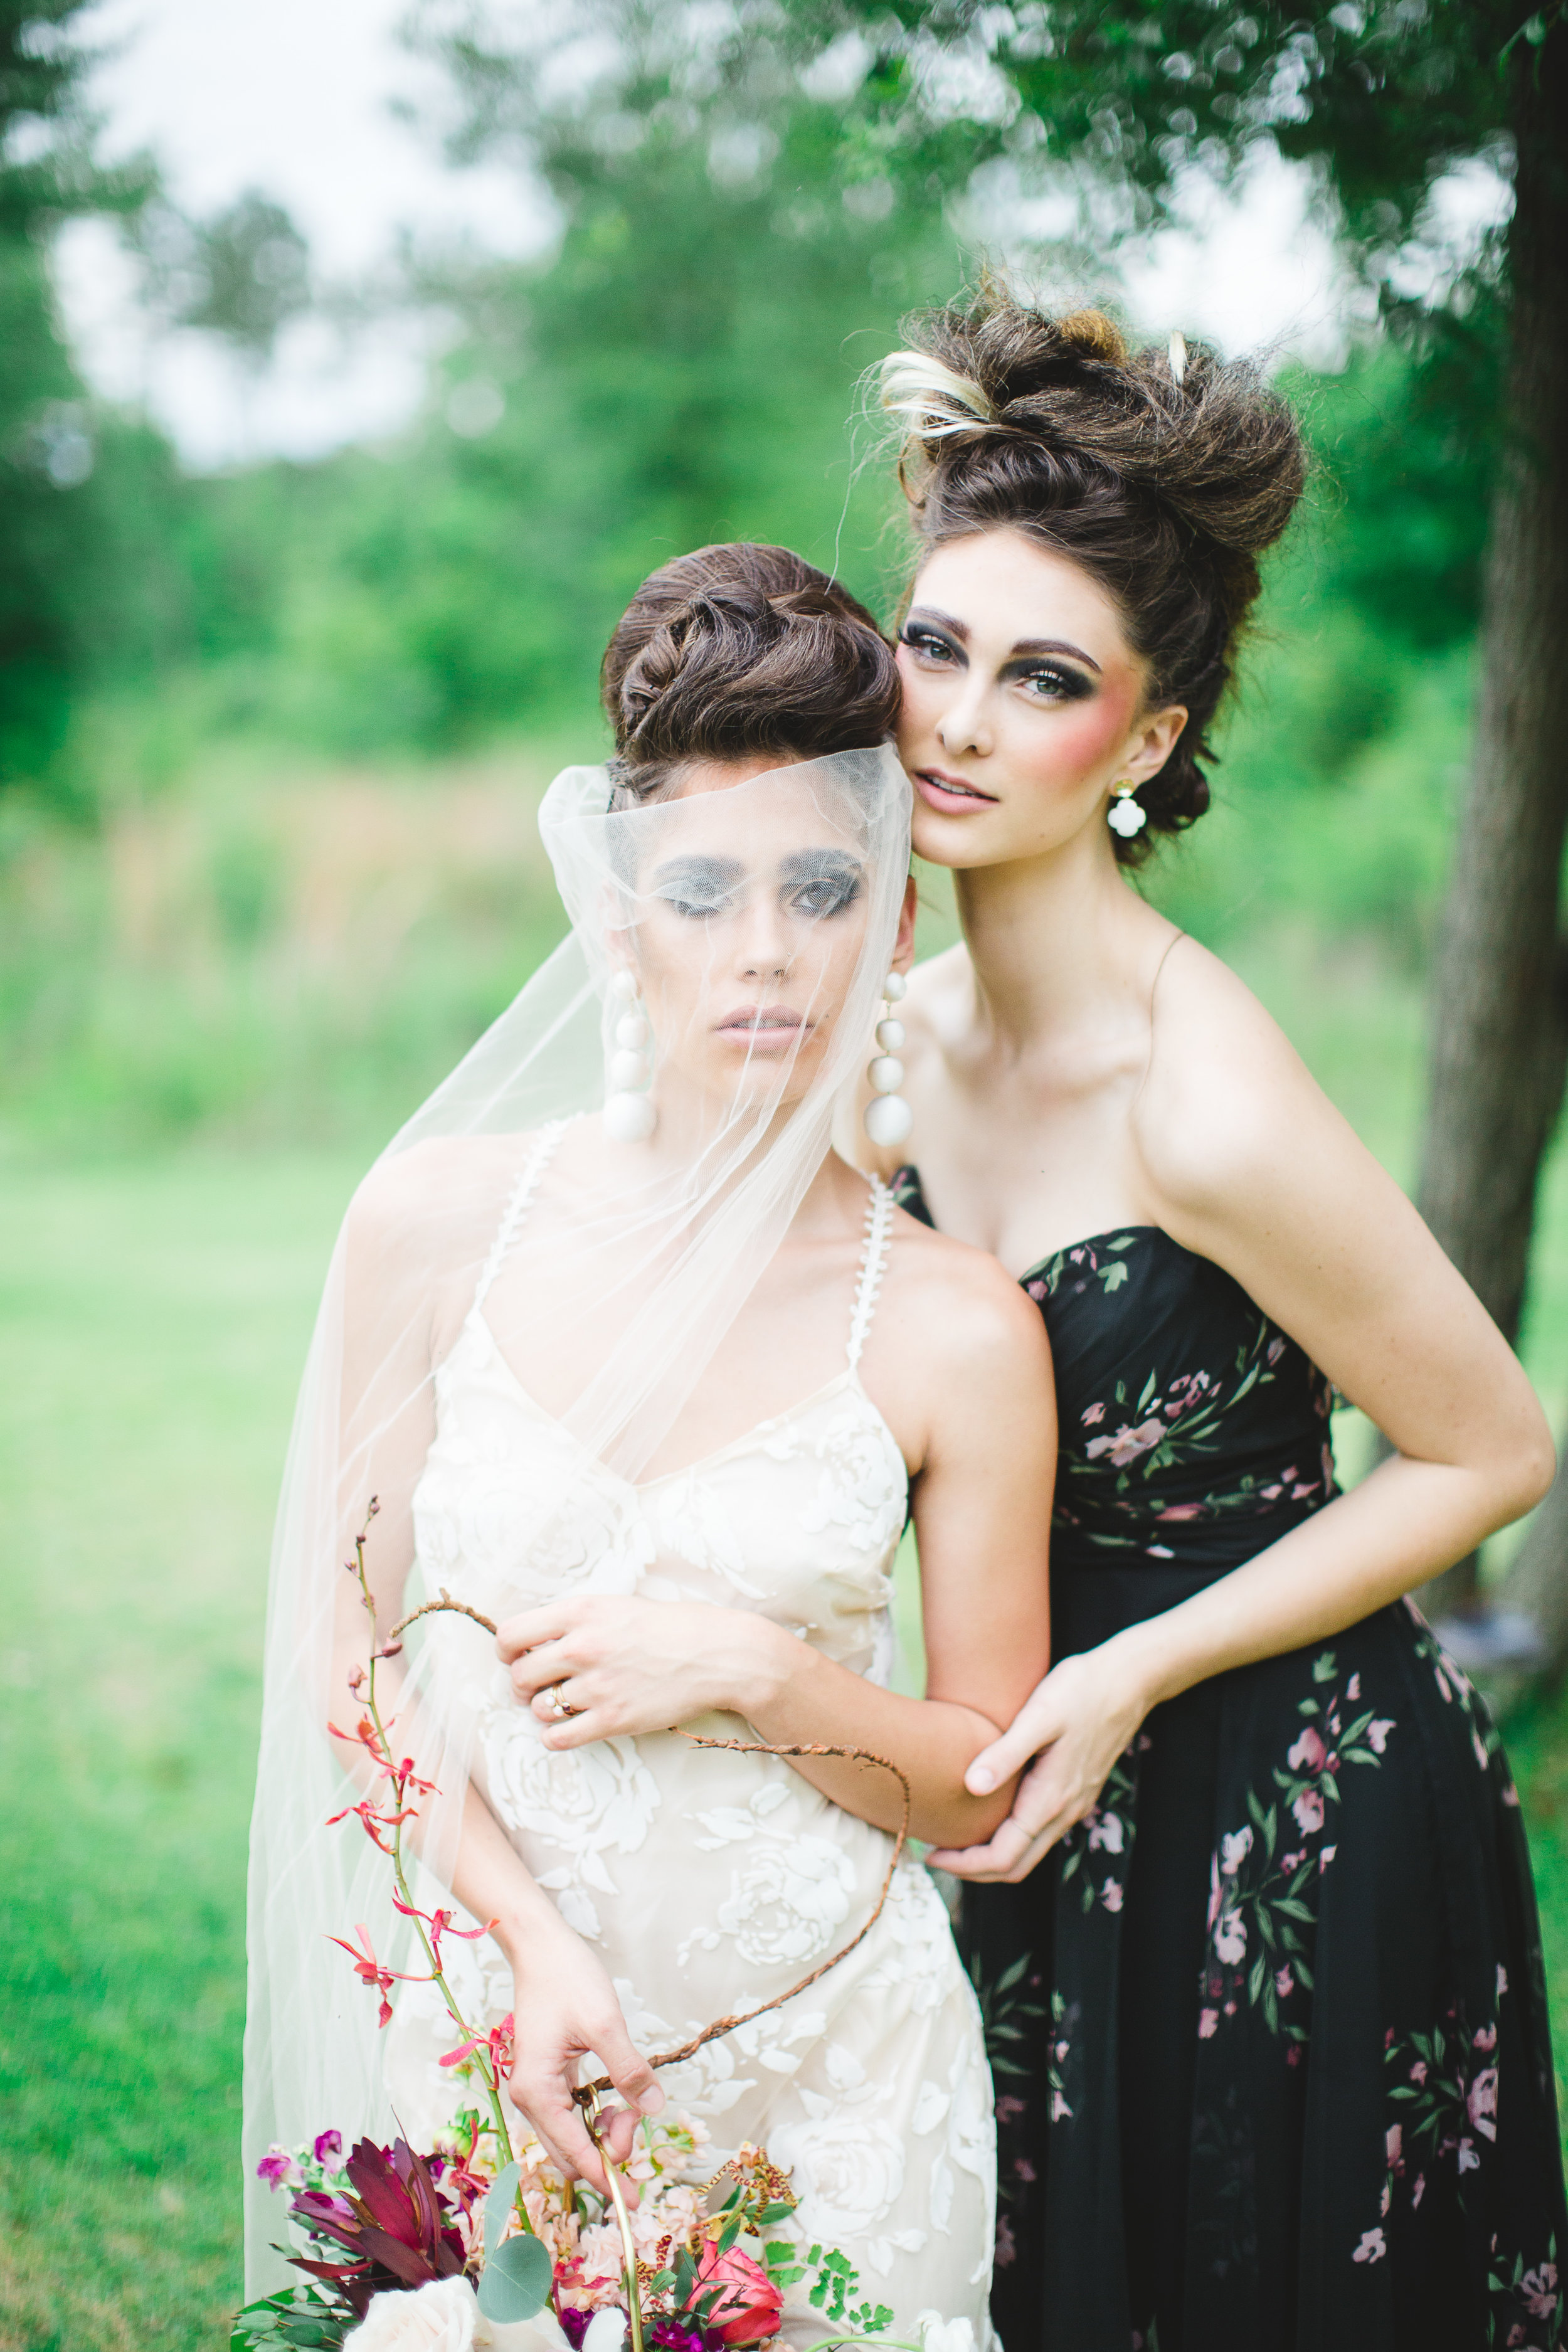 izzy-hudgins-photography-emily-burton-designs-ivory-and-beau-bridal-boutique-daughters-of-simone-sonje-jenny-yoo-bridesmaids-glamping-wedding-boho-wedding-outdoor-wedding-coldwater-gardens-wedding-savannah-bridal-boutique-savannah-wedding-planner-19.jpg